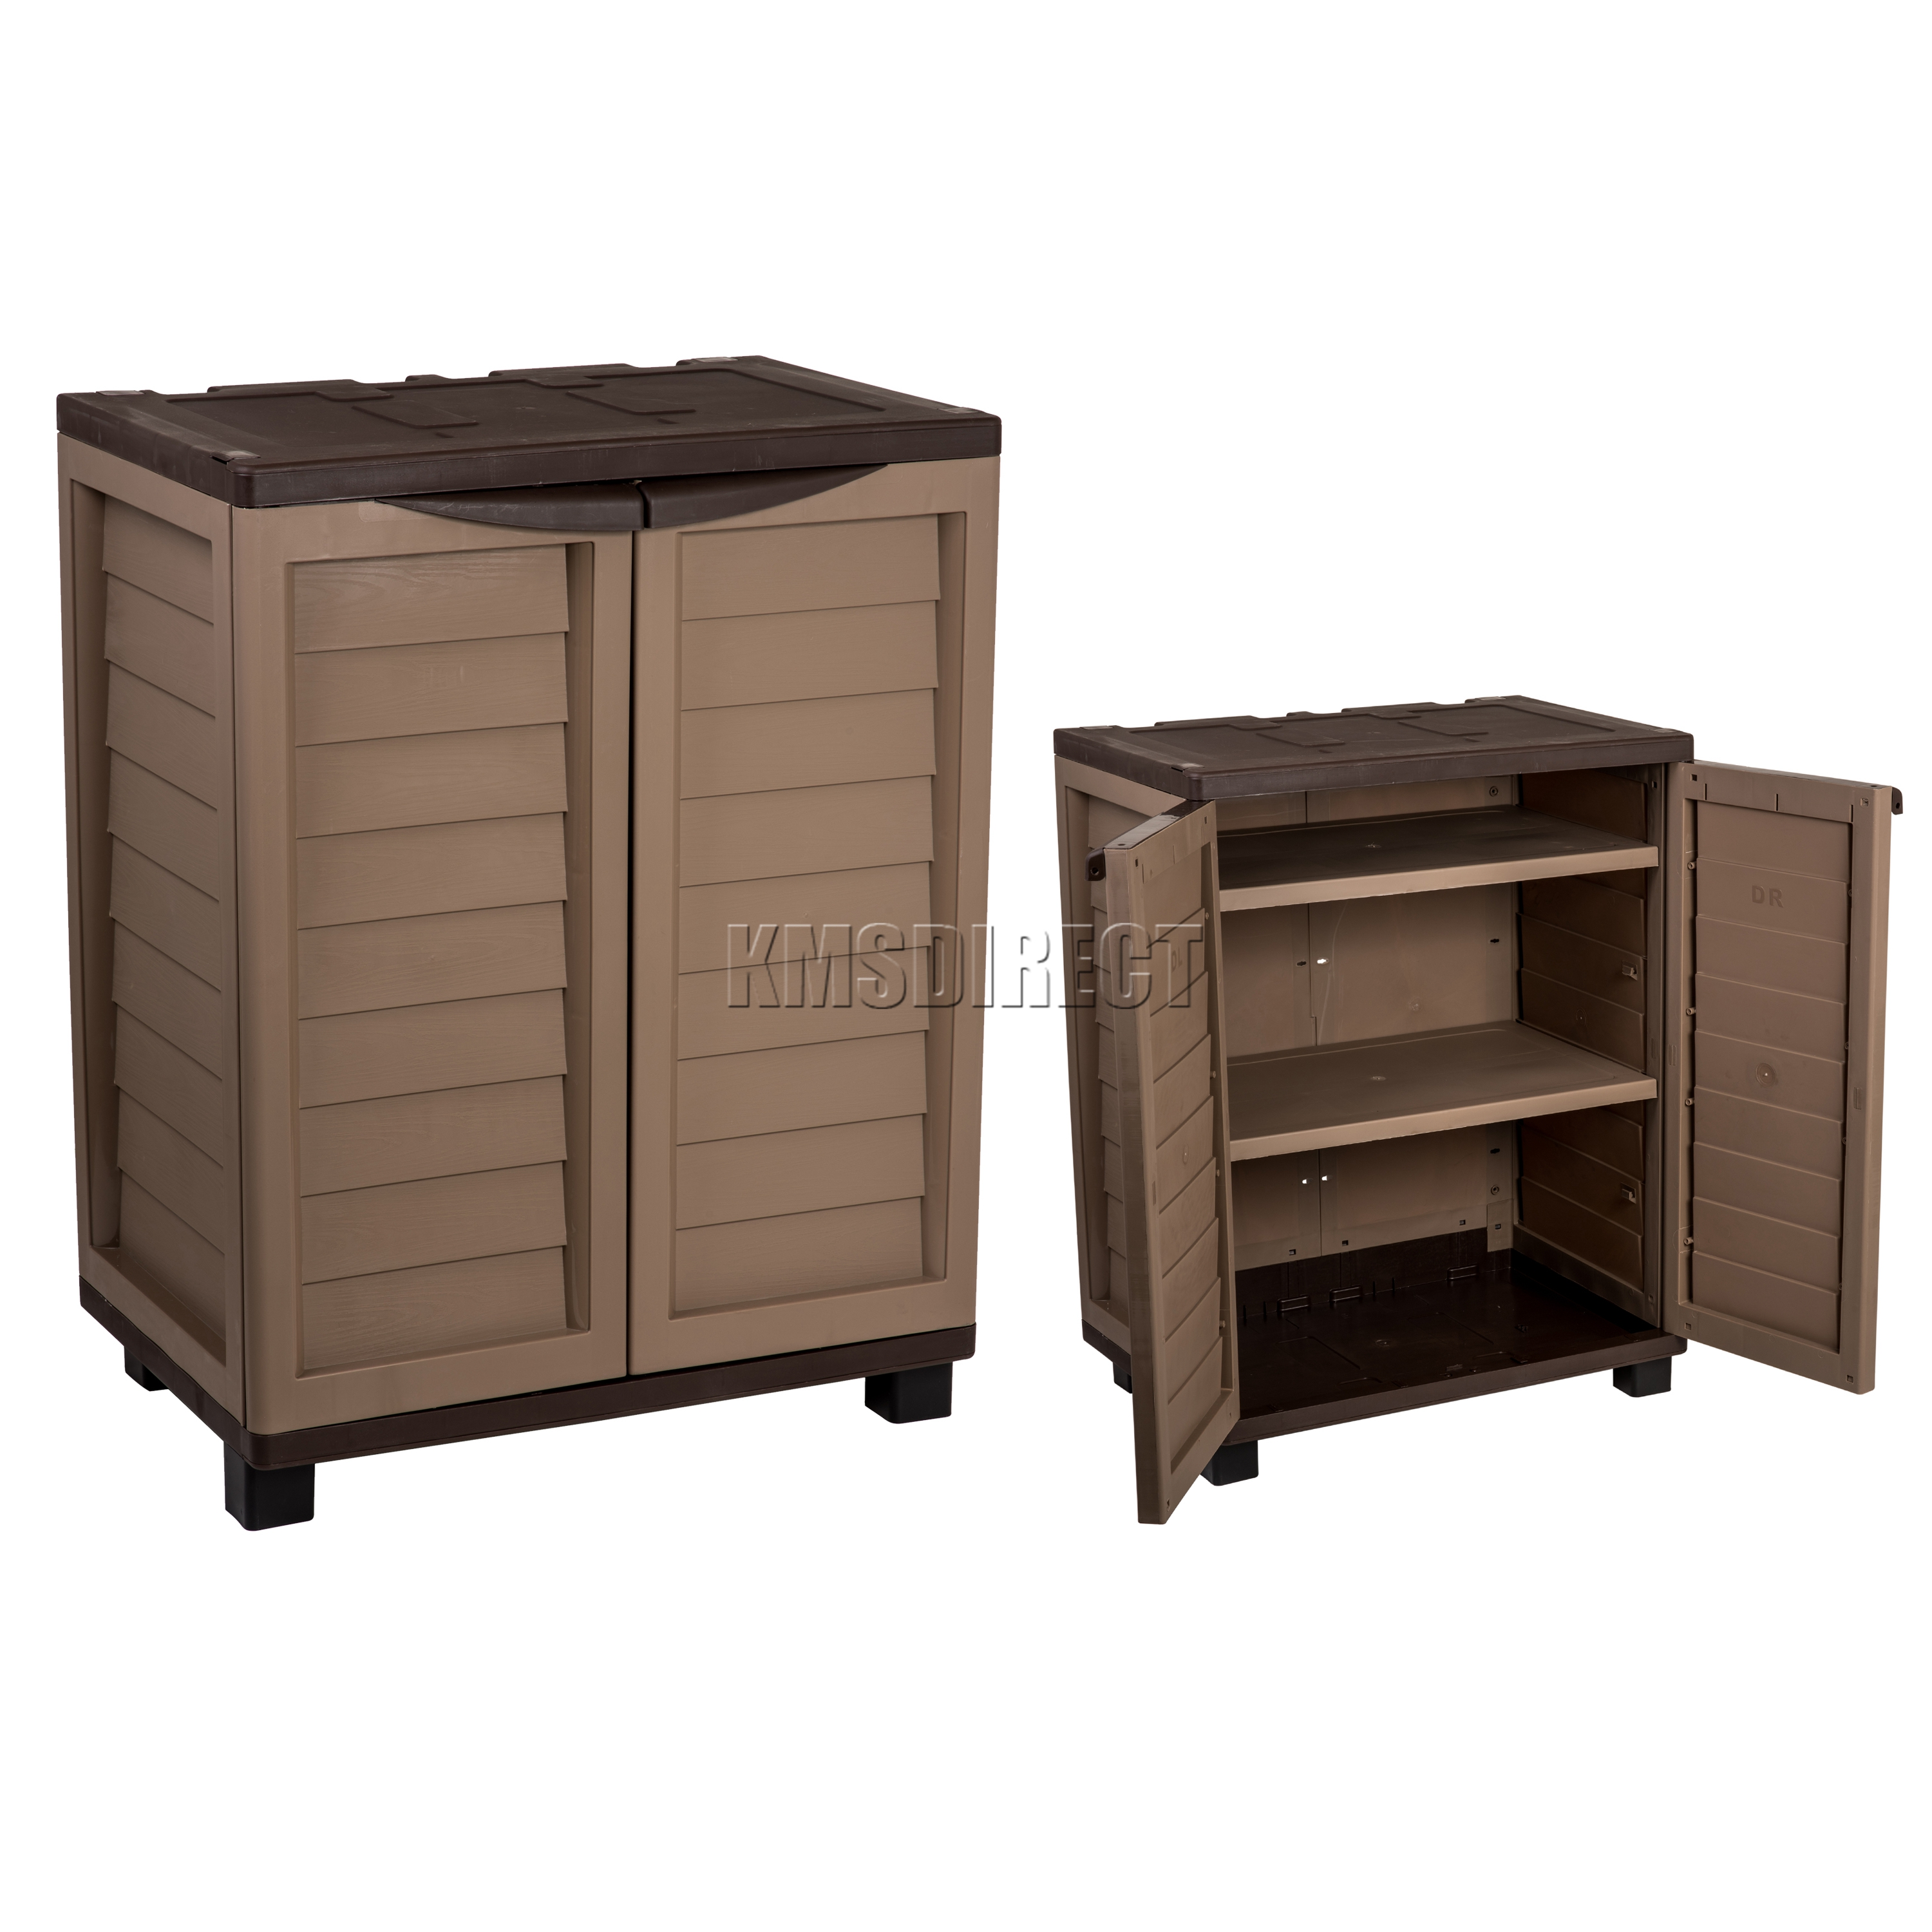 Starplast Outdoor Plastic Garden Utility Cabinet With 2 Shelves Storage Mocha Ebay